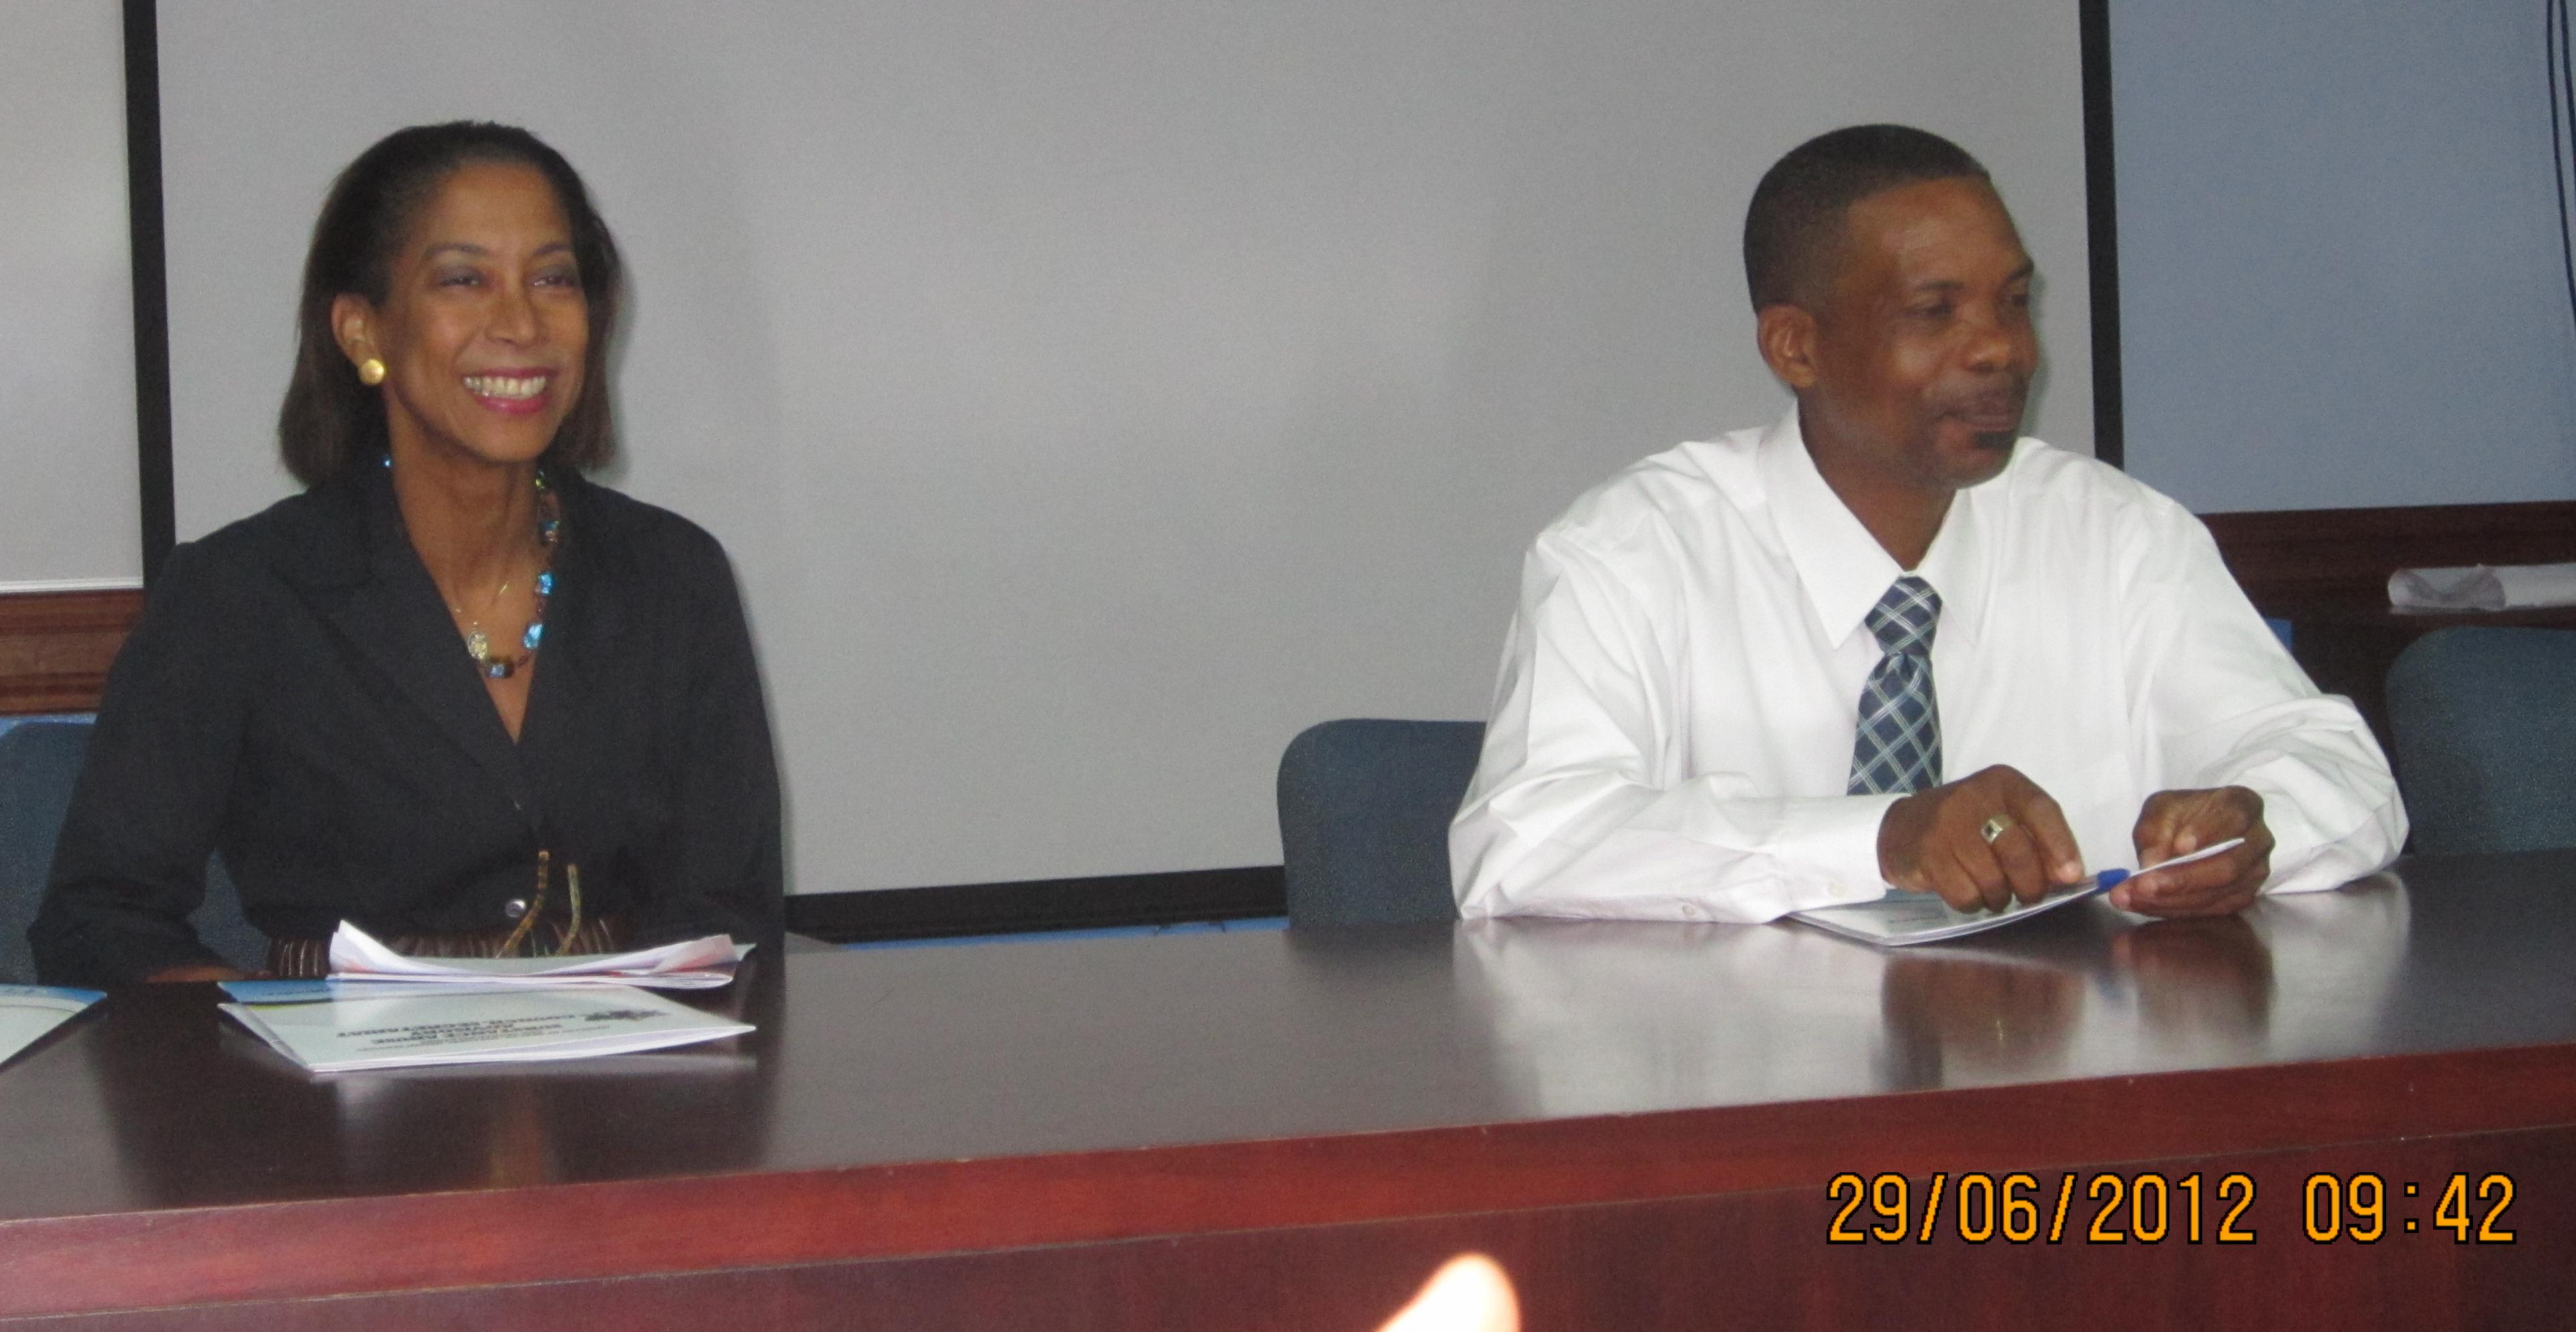 OAS/CICAD Workshop for Stakeholder Sensitization and Training on NATDIN